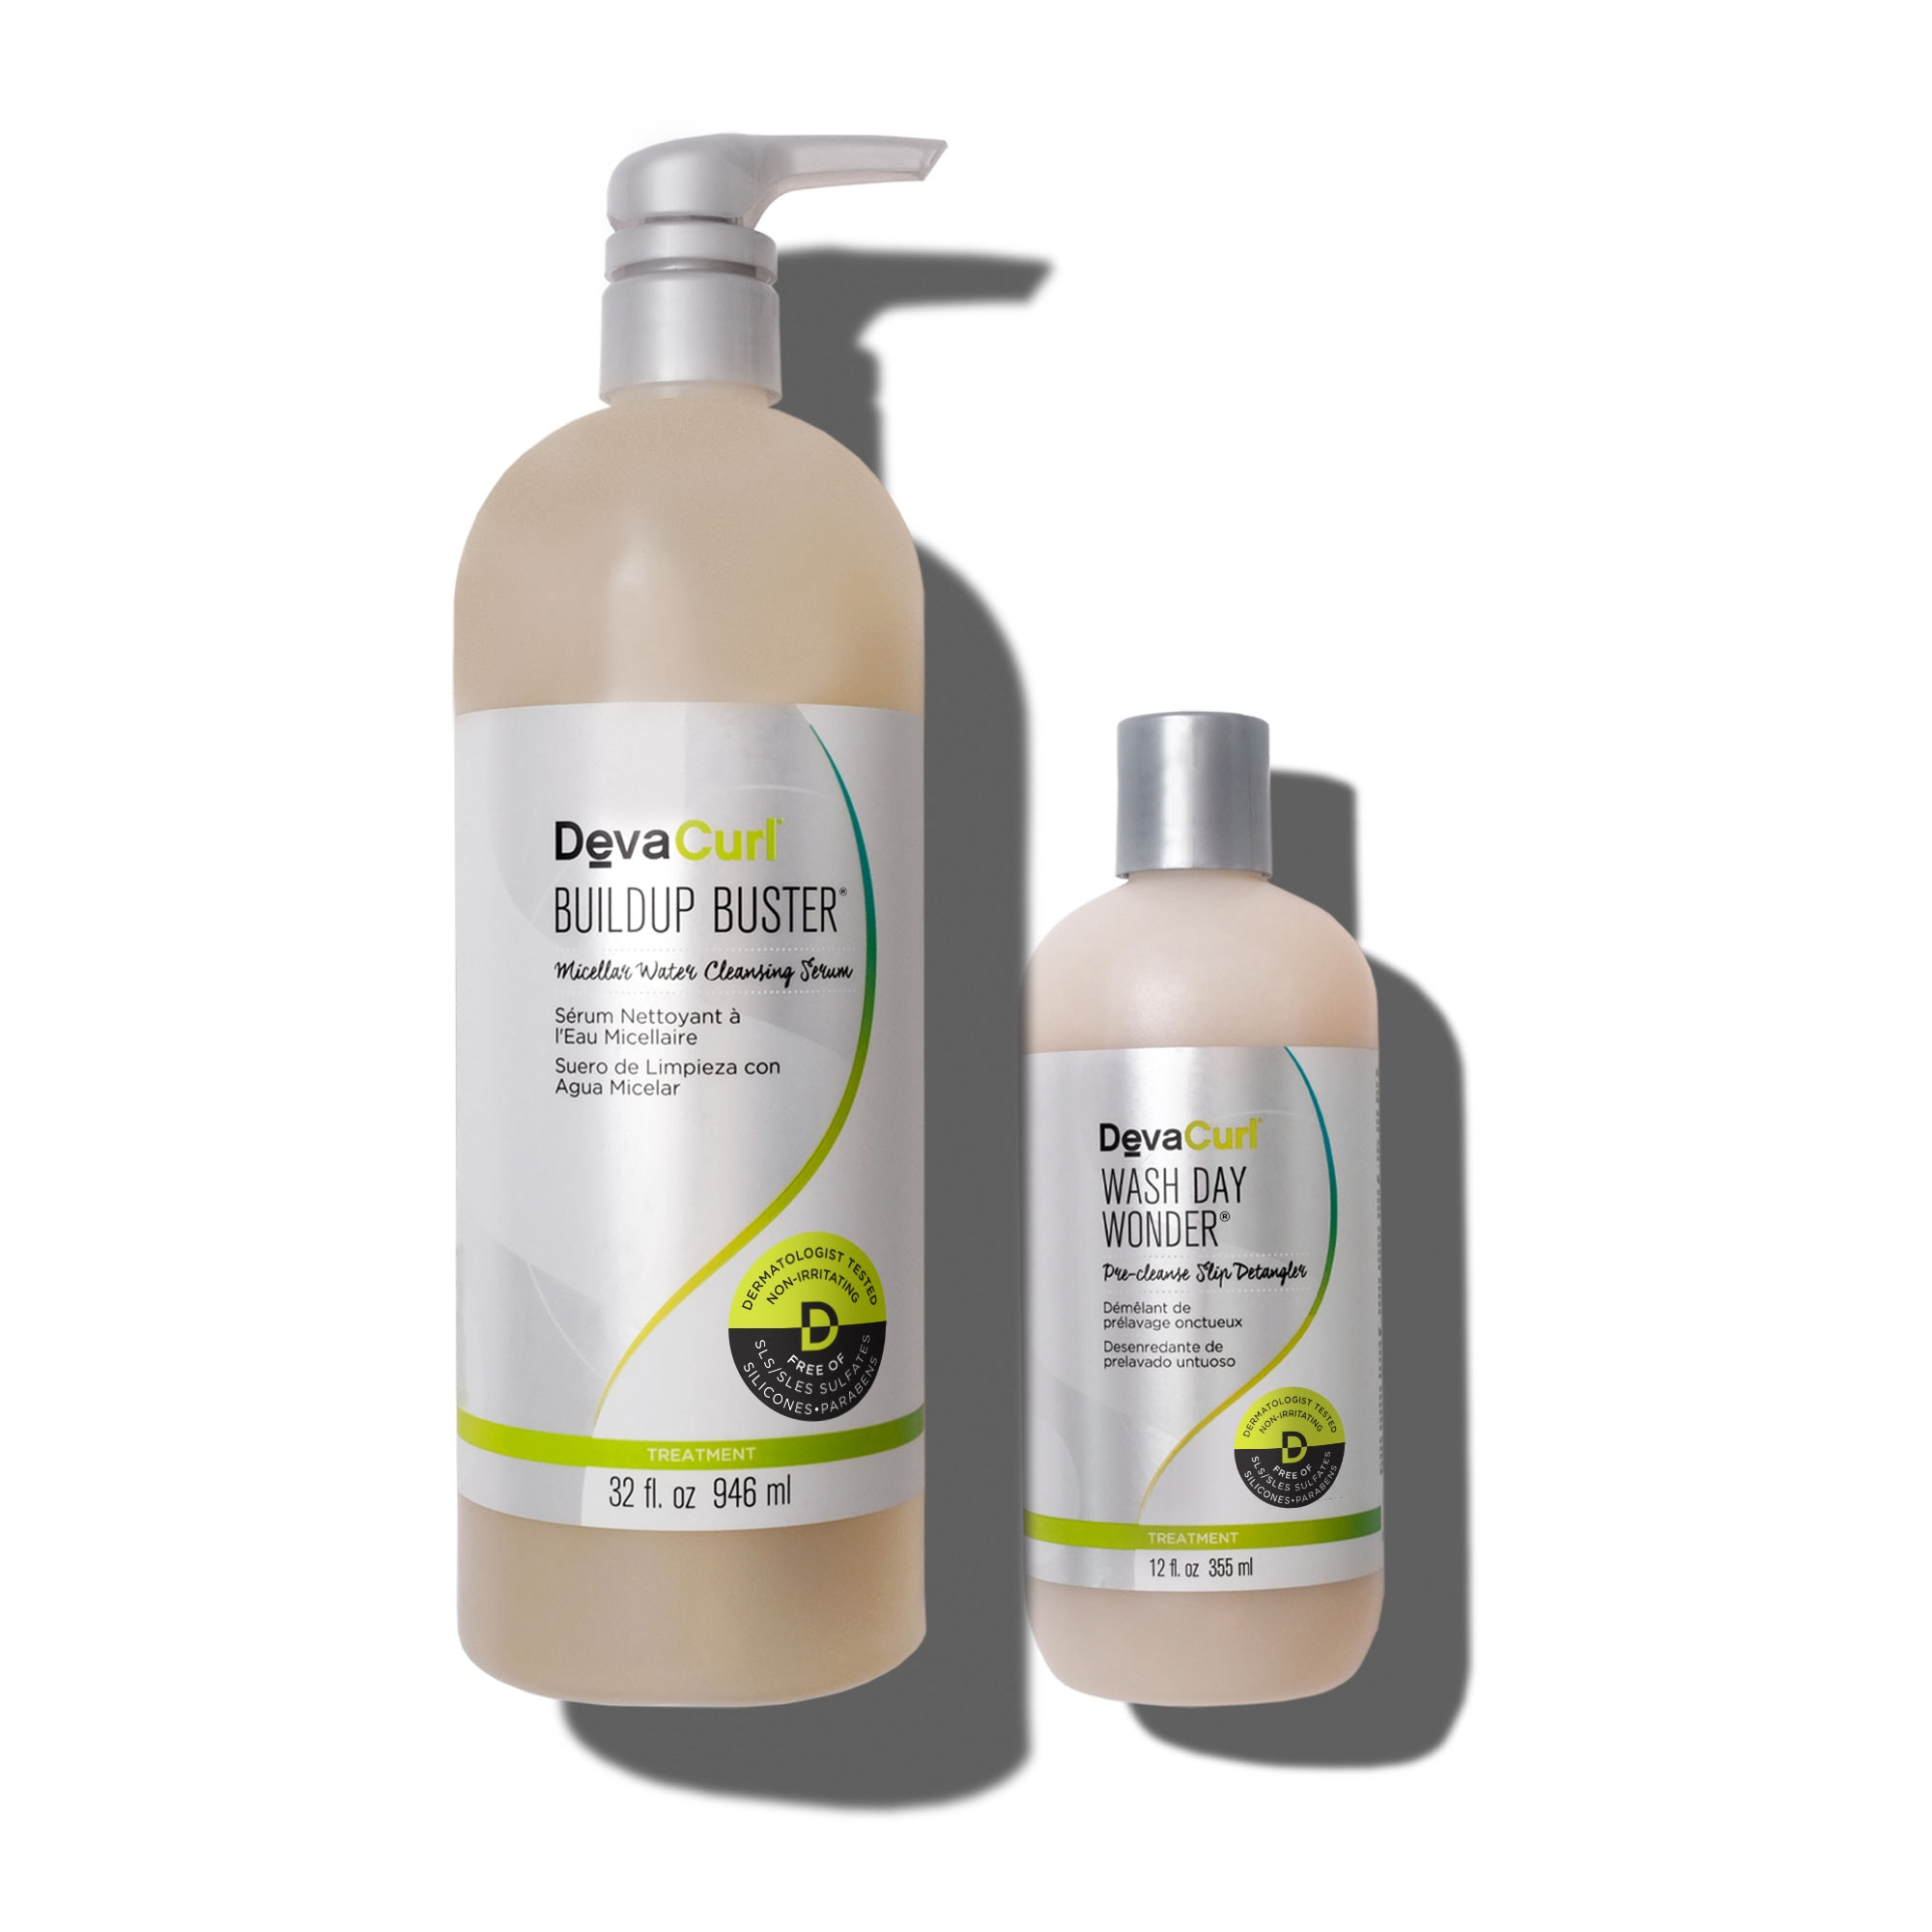 DevaCurl Buildup Buster 32oz bottle and Wash Day Wonder 12oz bottle